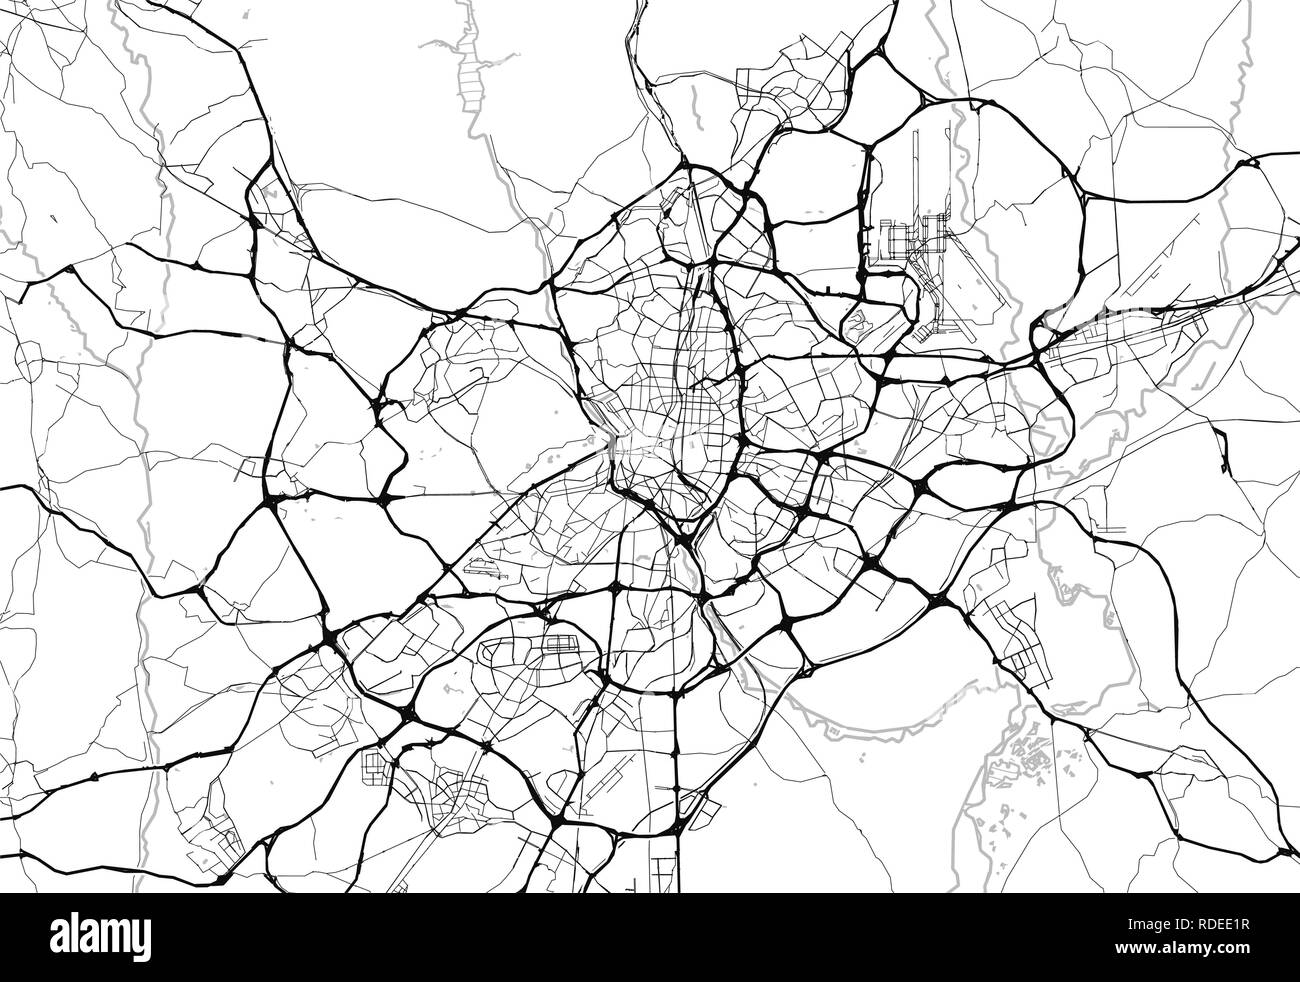 Area map of Madrid, Spain. This artmap of Madrid contains geography lines for land mass, water, major and minor roads. Stock Vector